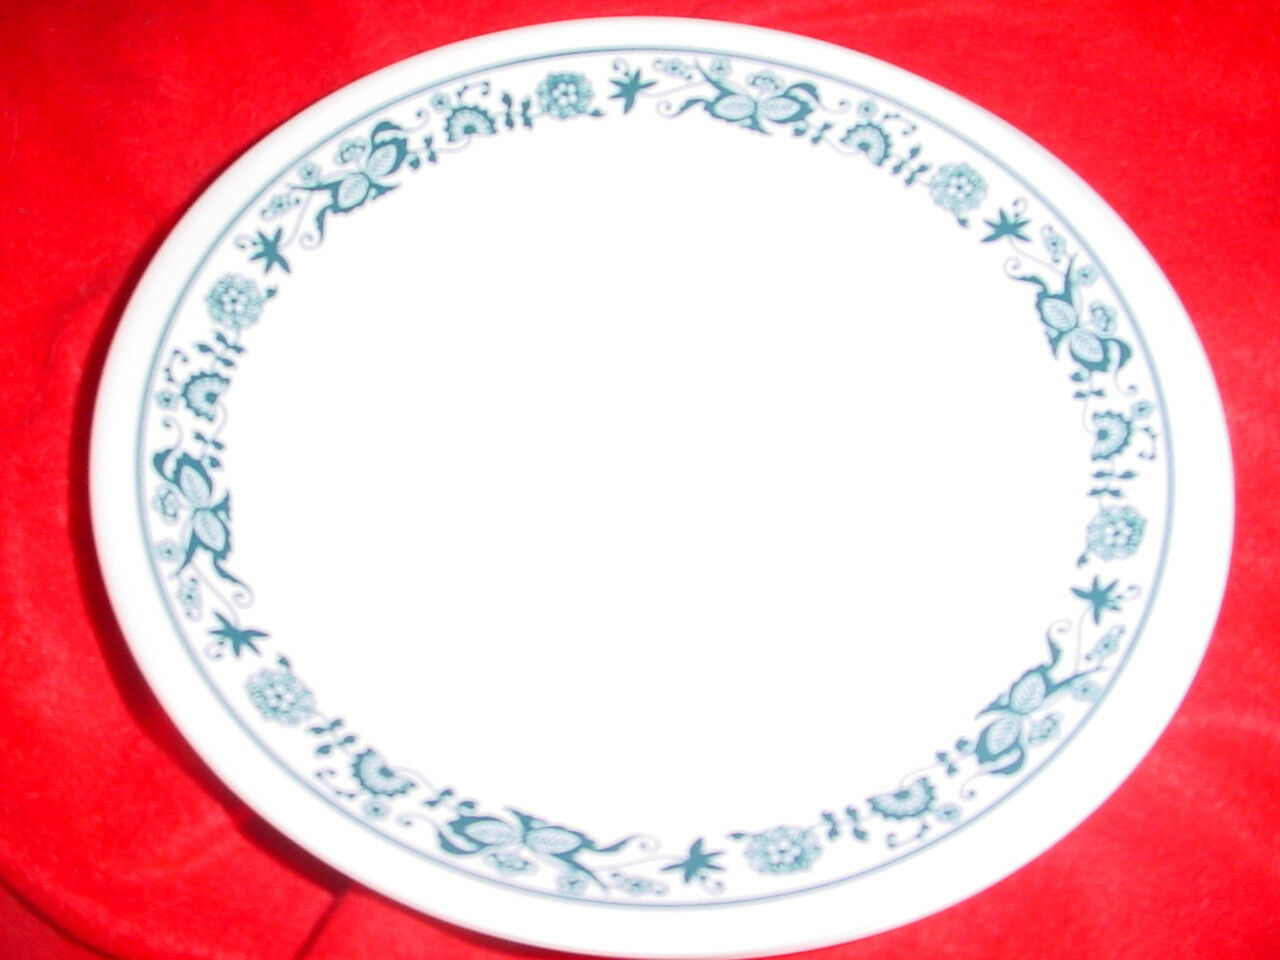 Primary image for CORELLE OLD TOWN BLUE 8.5 INCH LUNCH/SALAD PLATES x4 NEW FREE USA SHIPPING